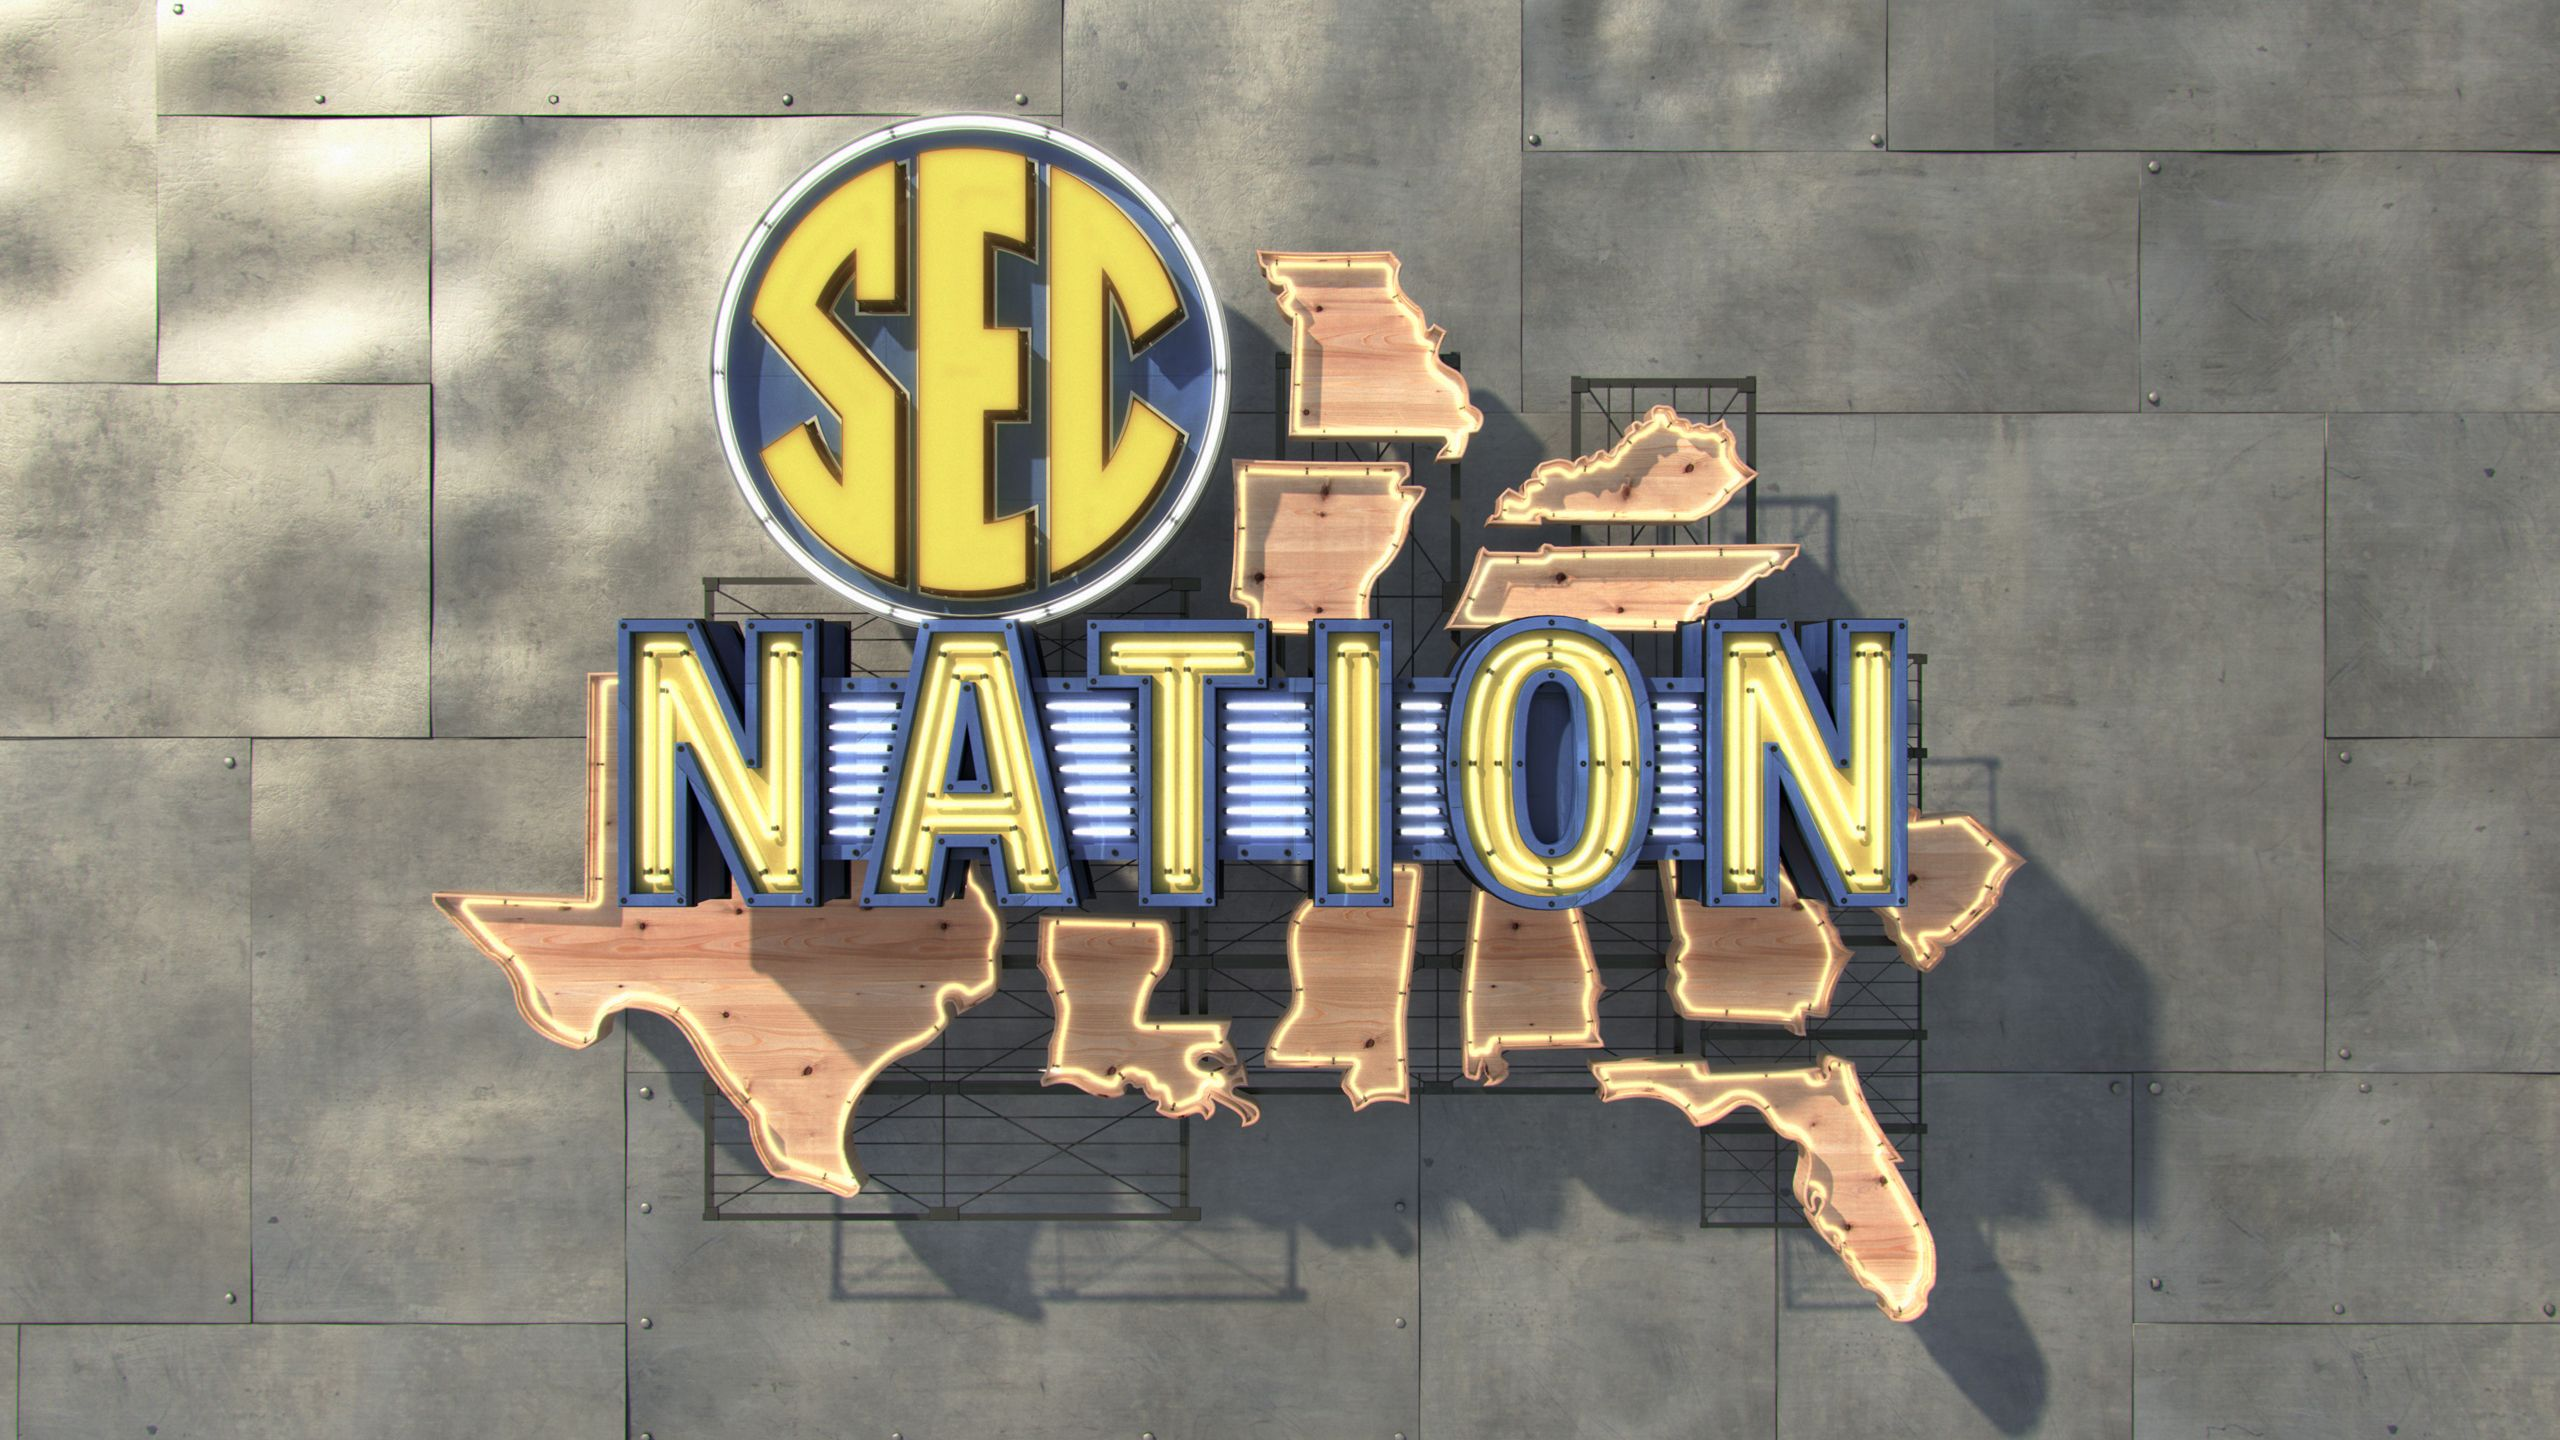 Sun, 7/15 - SEC Nation Presented by Regions Bank